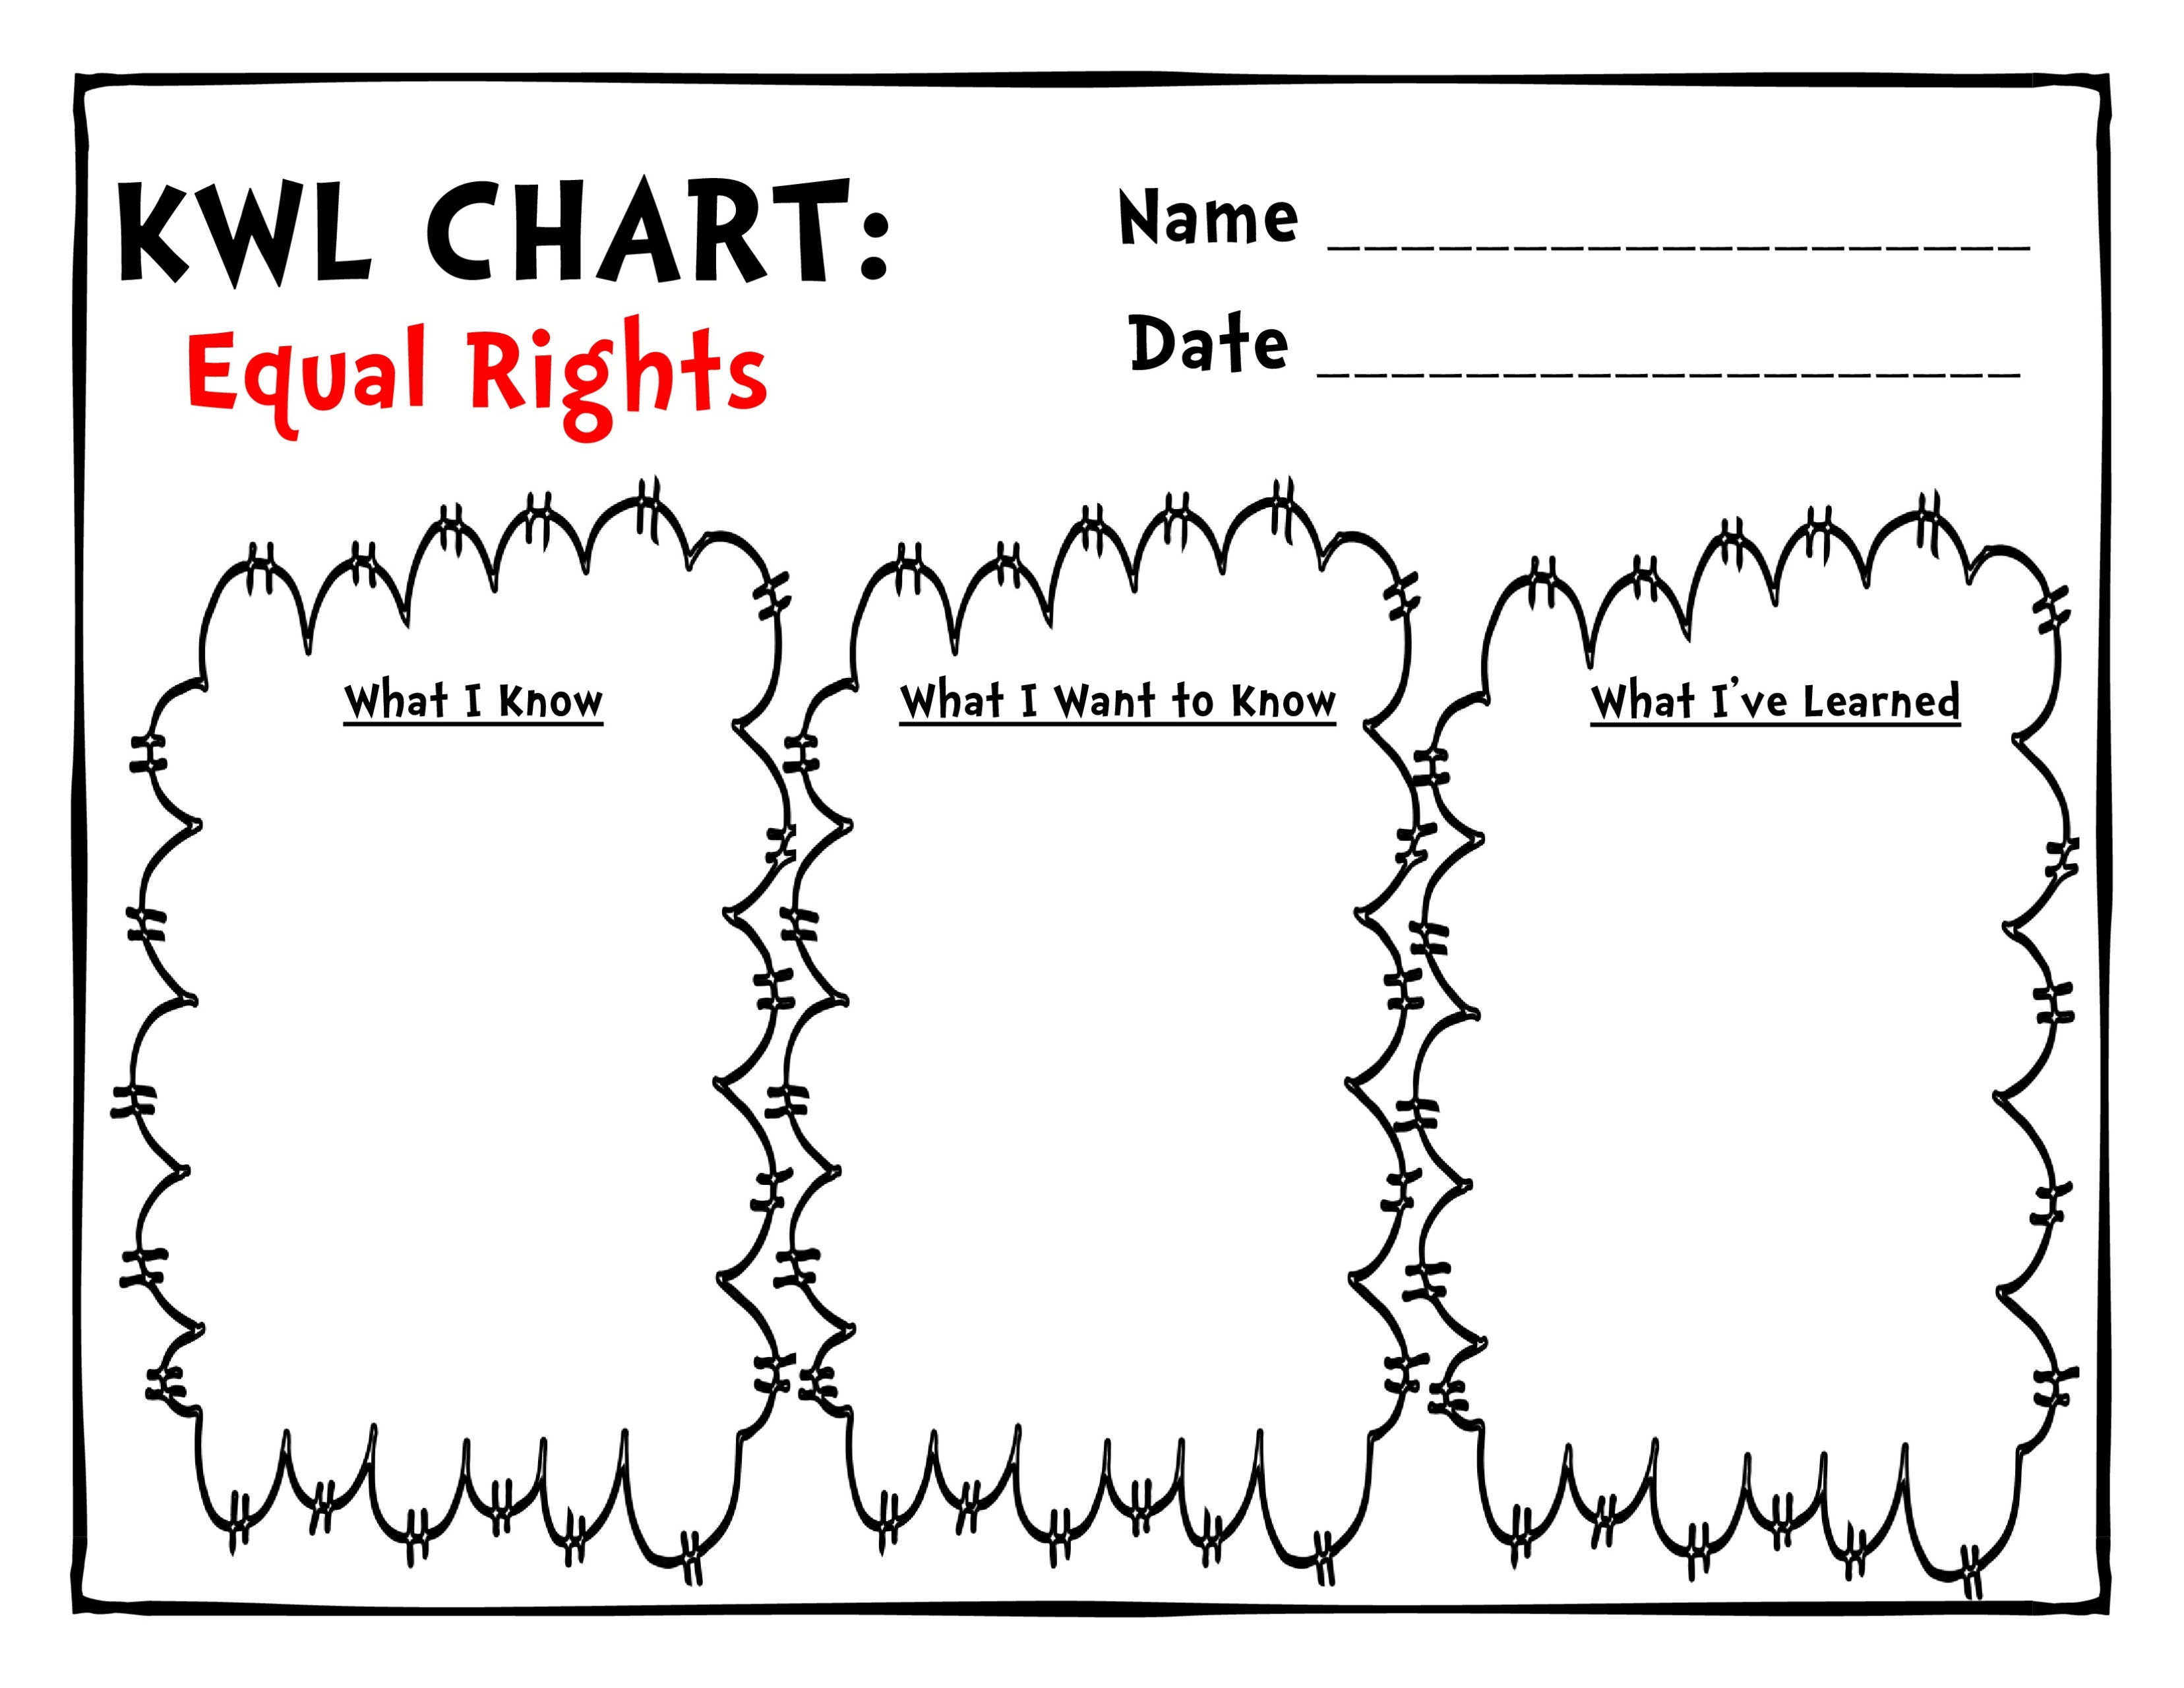 Kwl Charts For Mlk Day Amp Black History Month